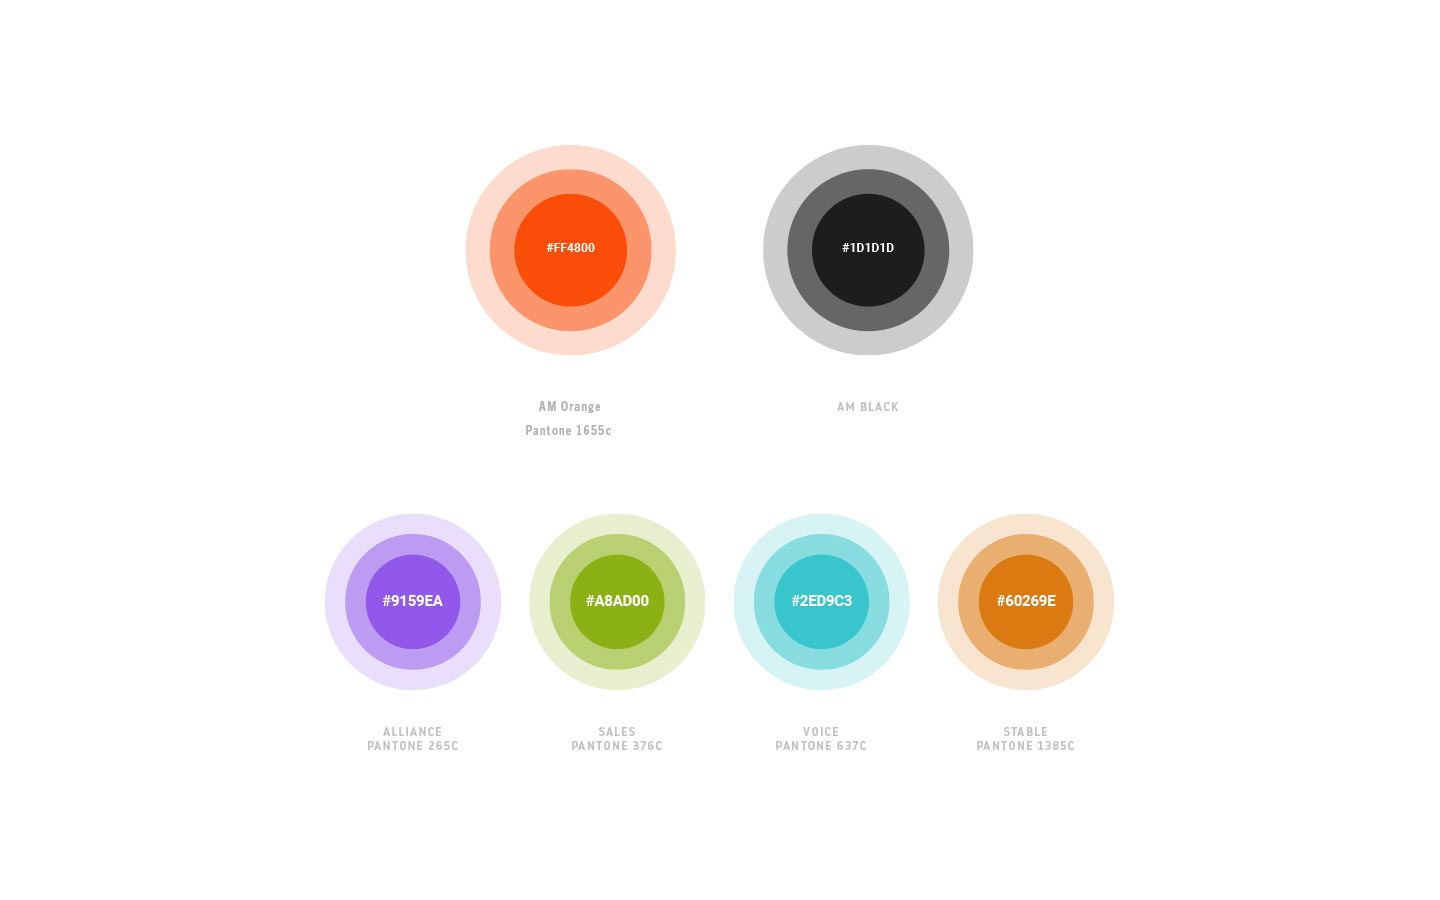 Agency match colors